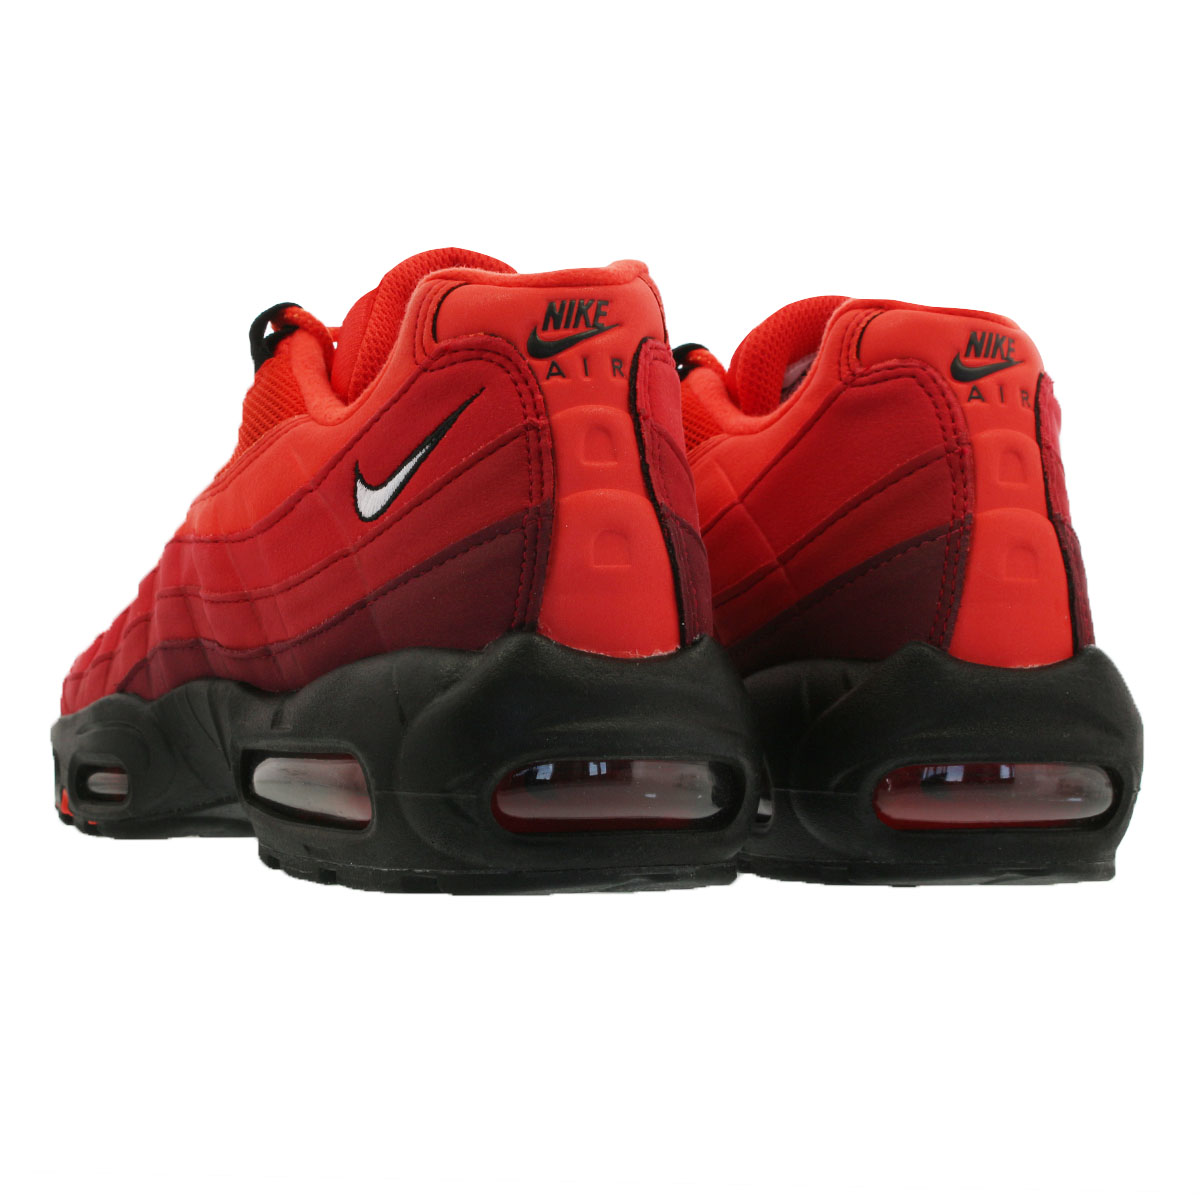 lowest price 779e7 a7c16 NIKE AIR MAX 95 OG Kie Ney AMAX 95 OG HABANERO RED/WHITE/UNIVERSITY RED/GYM  RED/TEAM RED/BLACK at2865-600